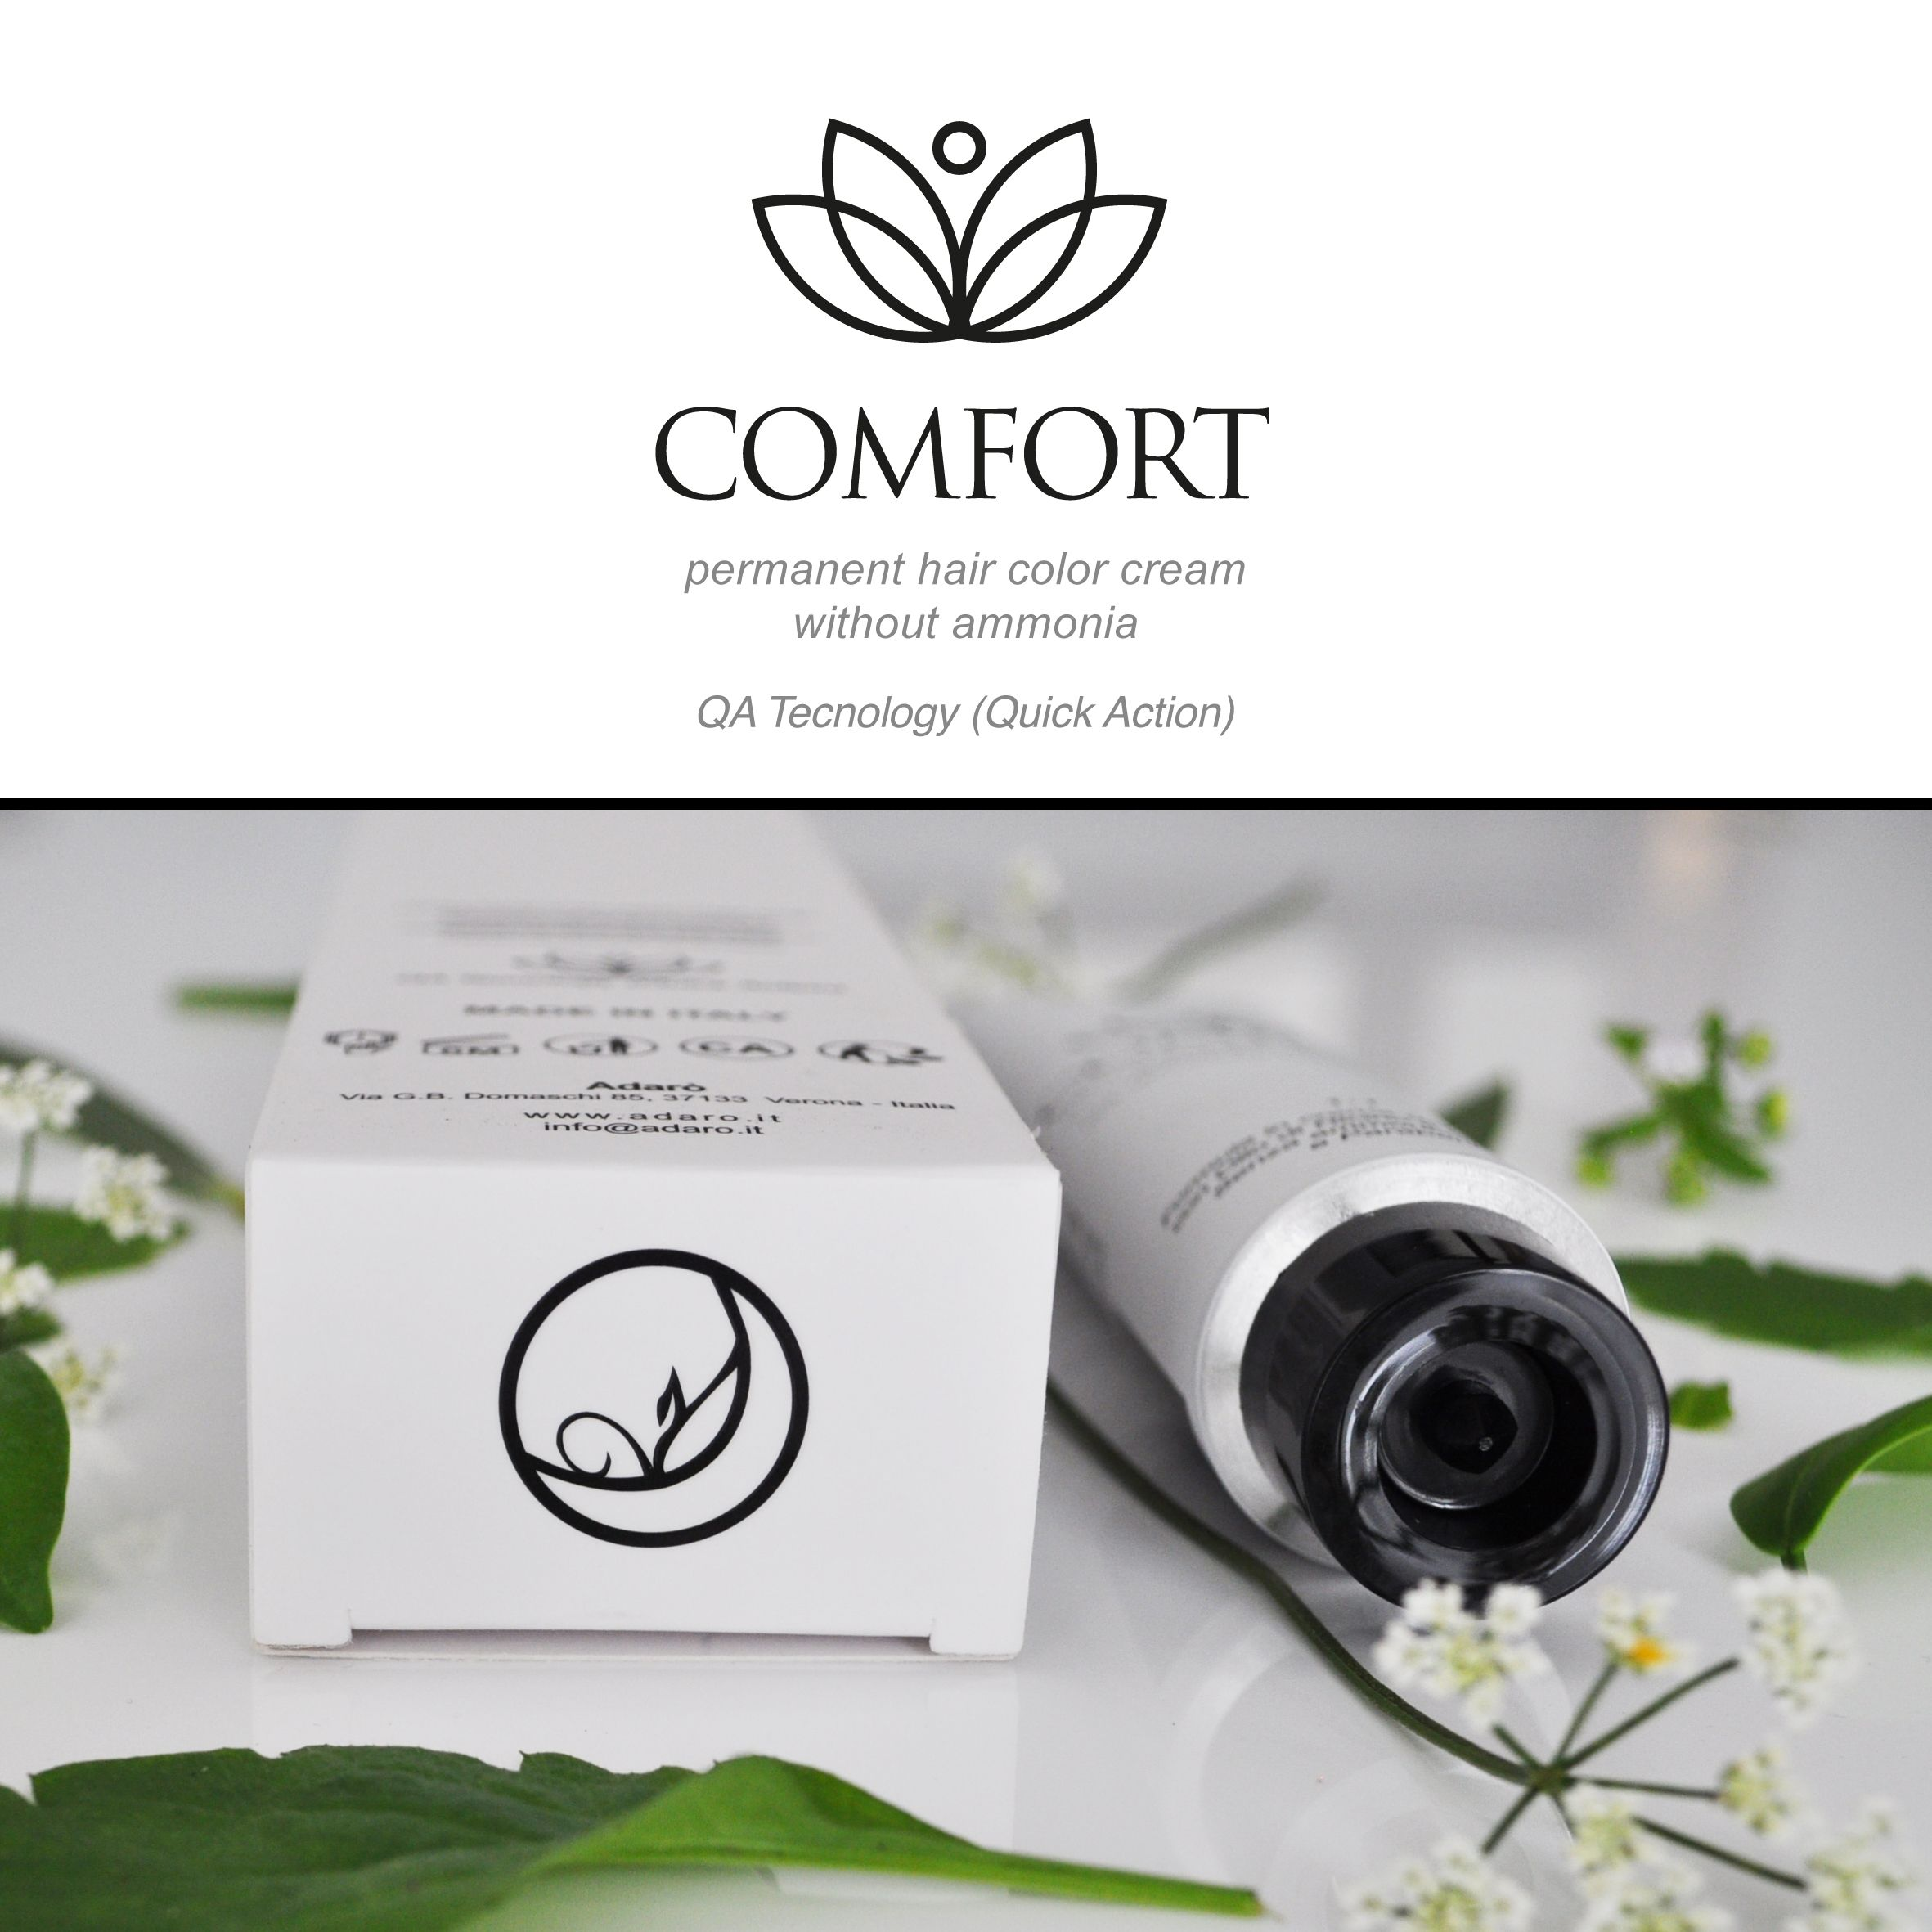 Comfort by Adarò - Ammonia Free hair Color - For unique people, for those who matter about softness, nature and harmony. From the raw material until the gorgeous natural result over your hair.